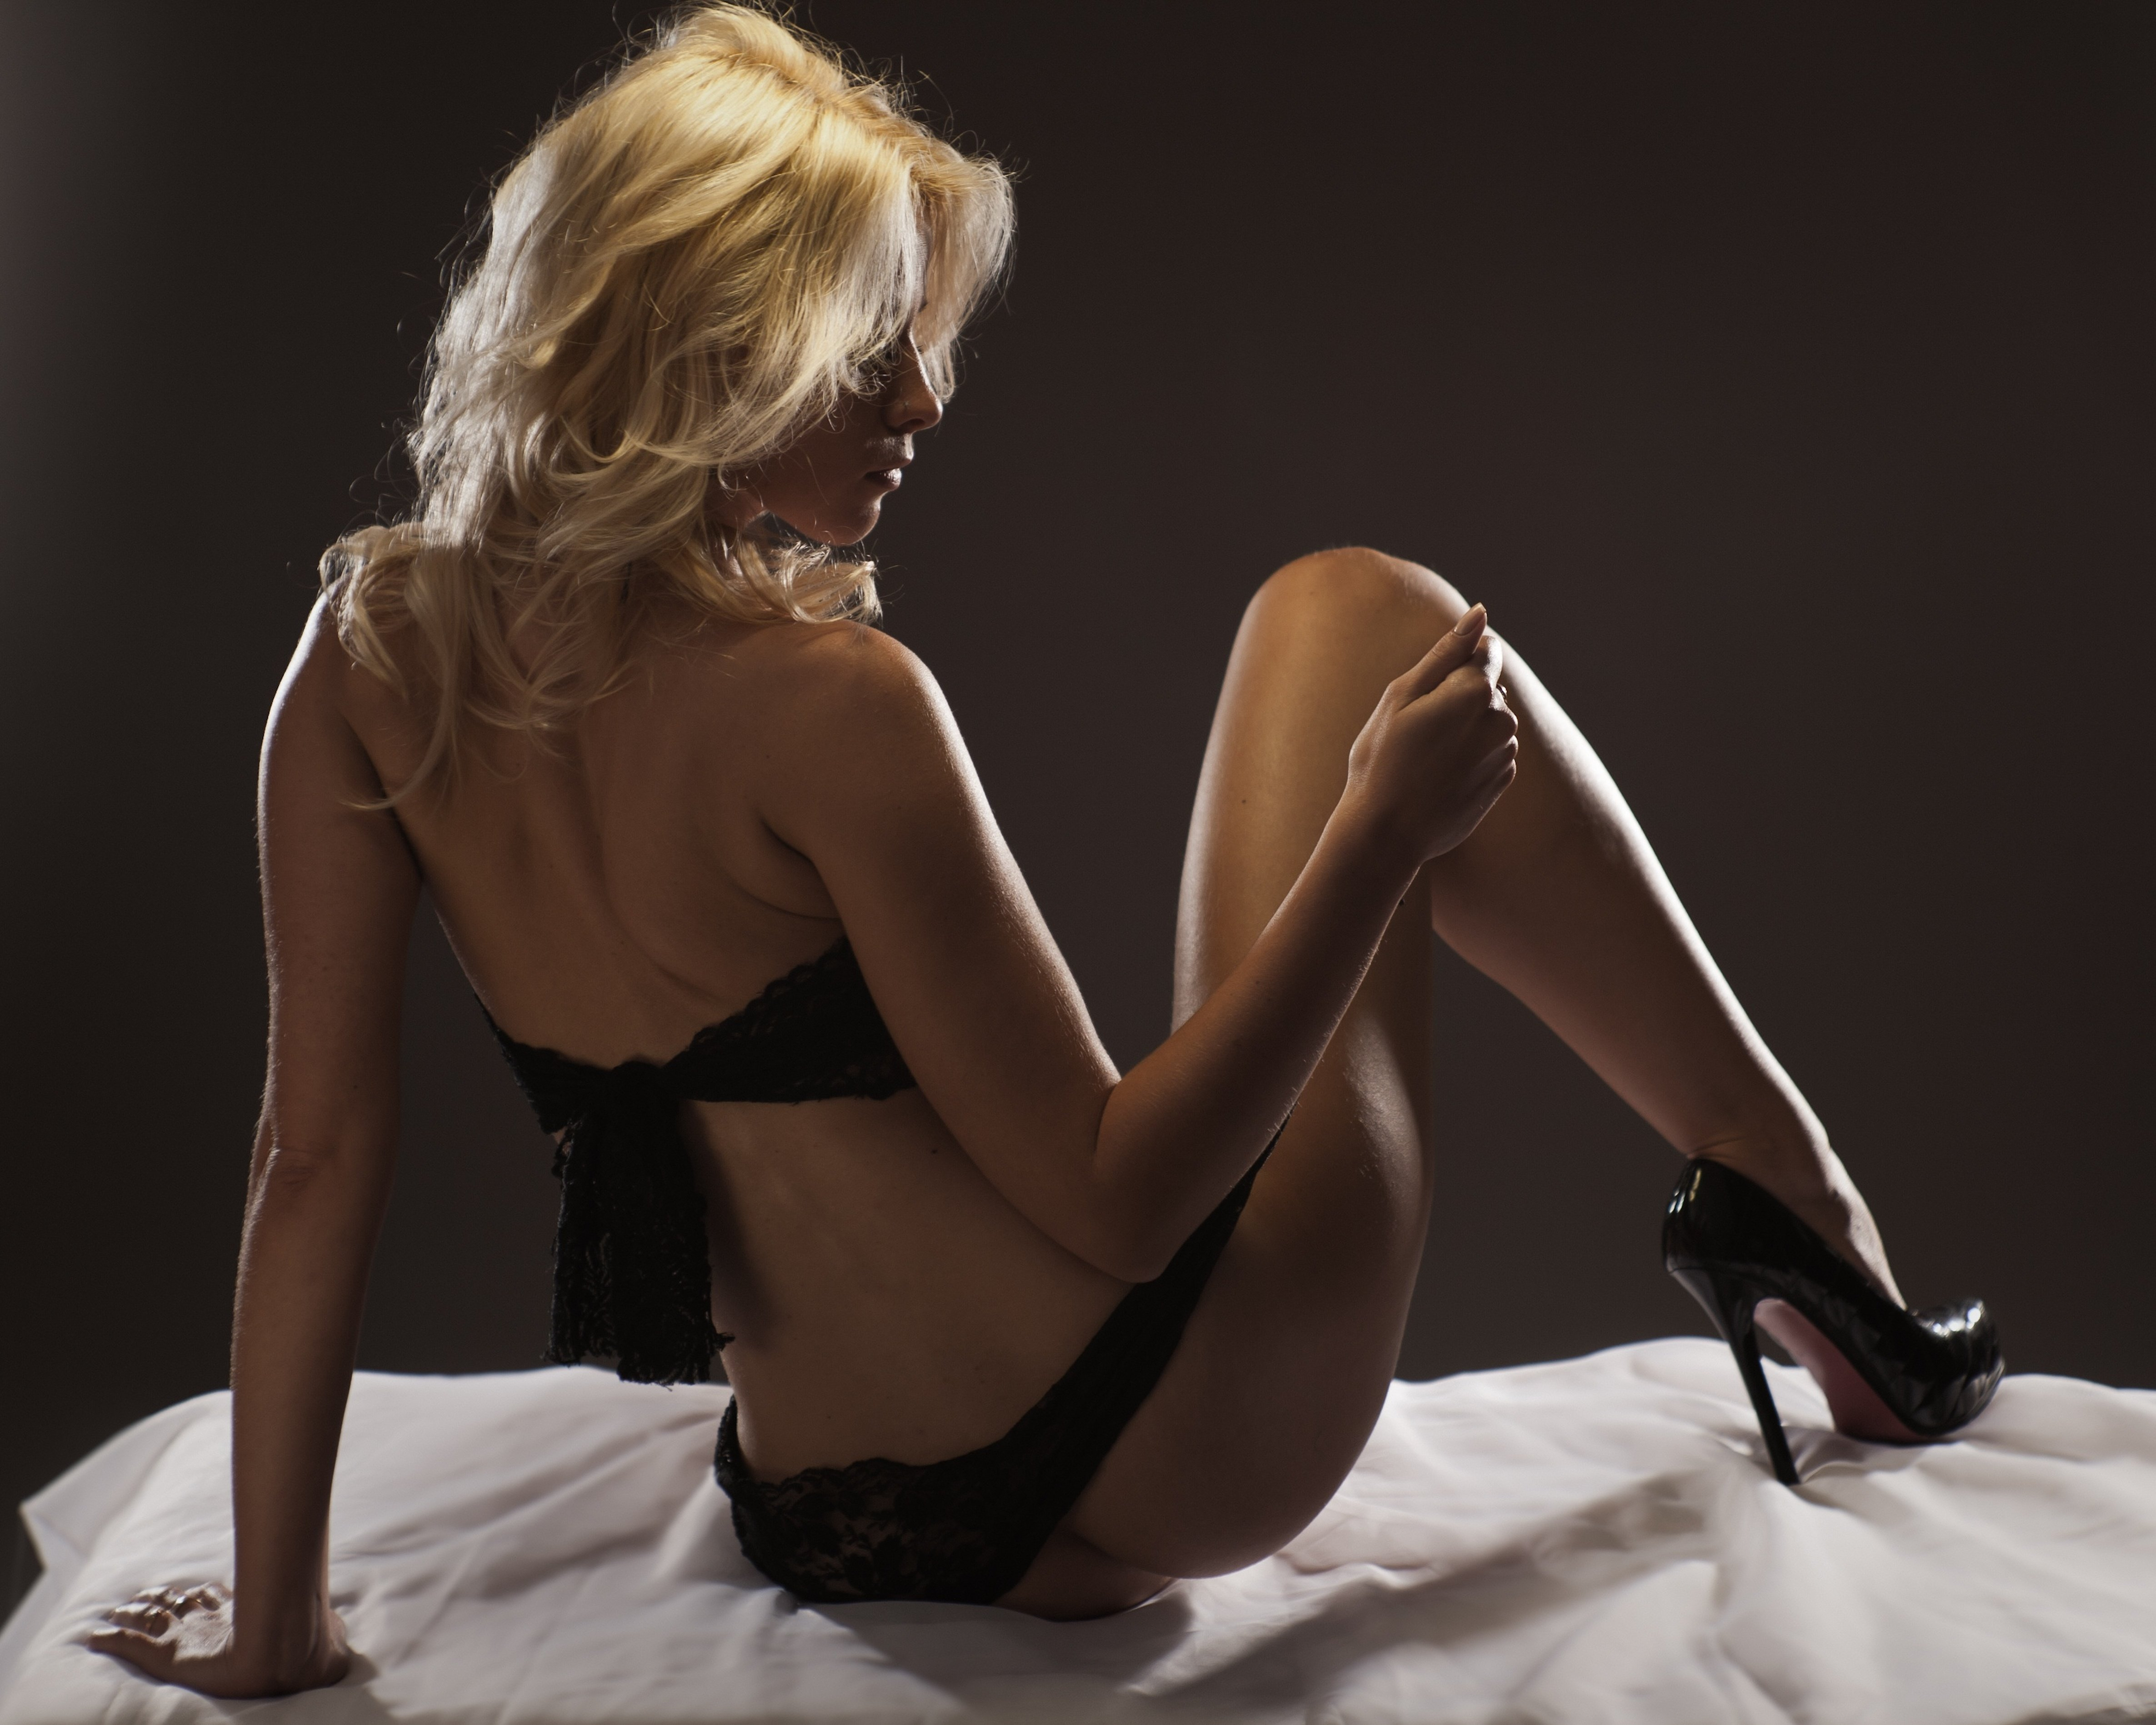 Spend New Year's 2021 Eve with a high-class escort